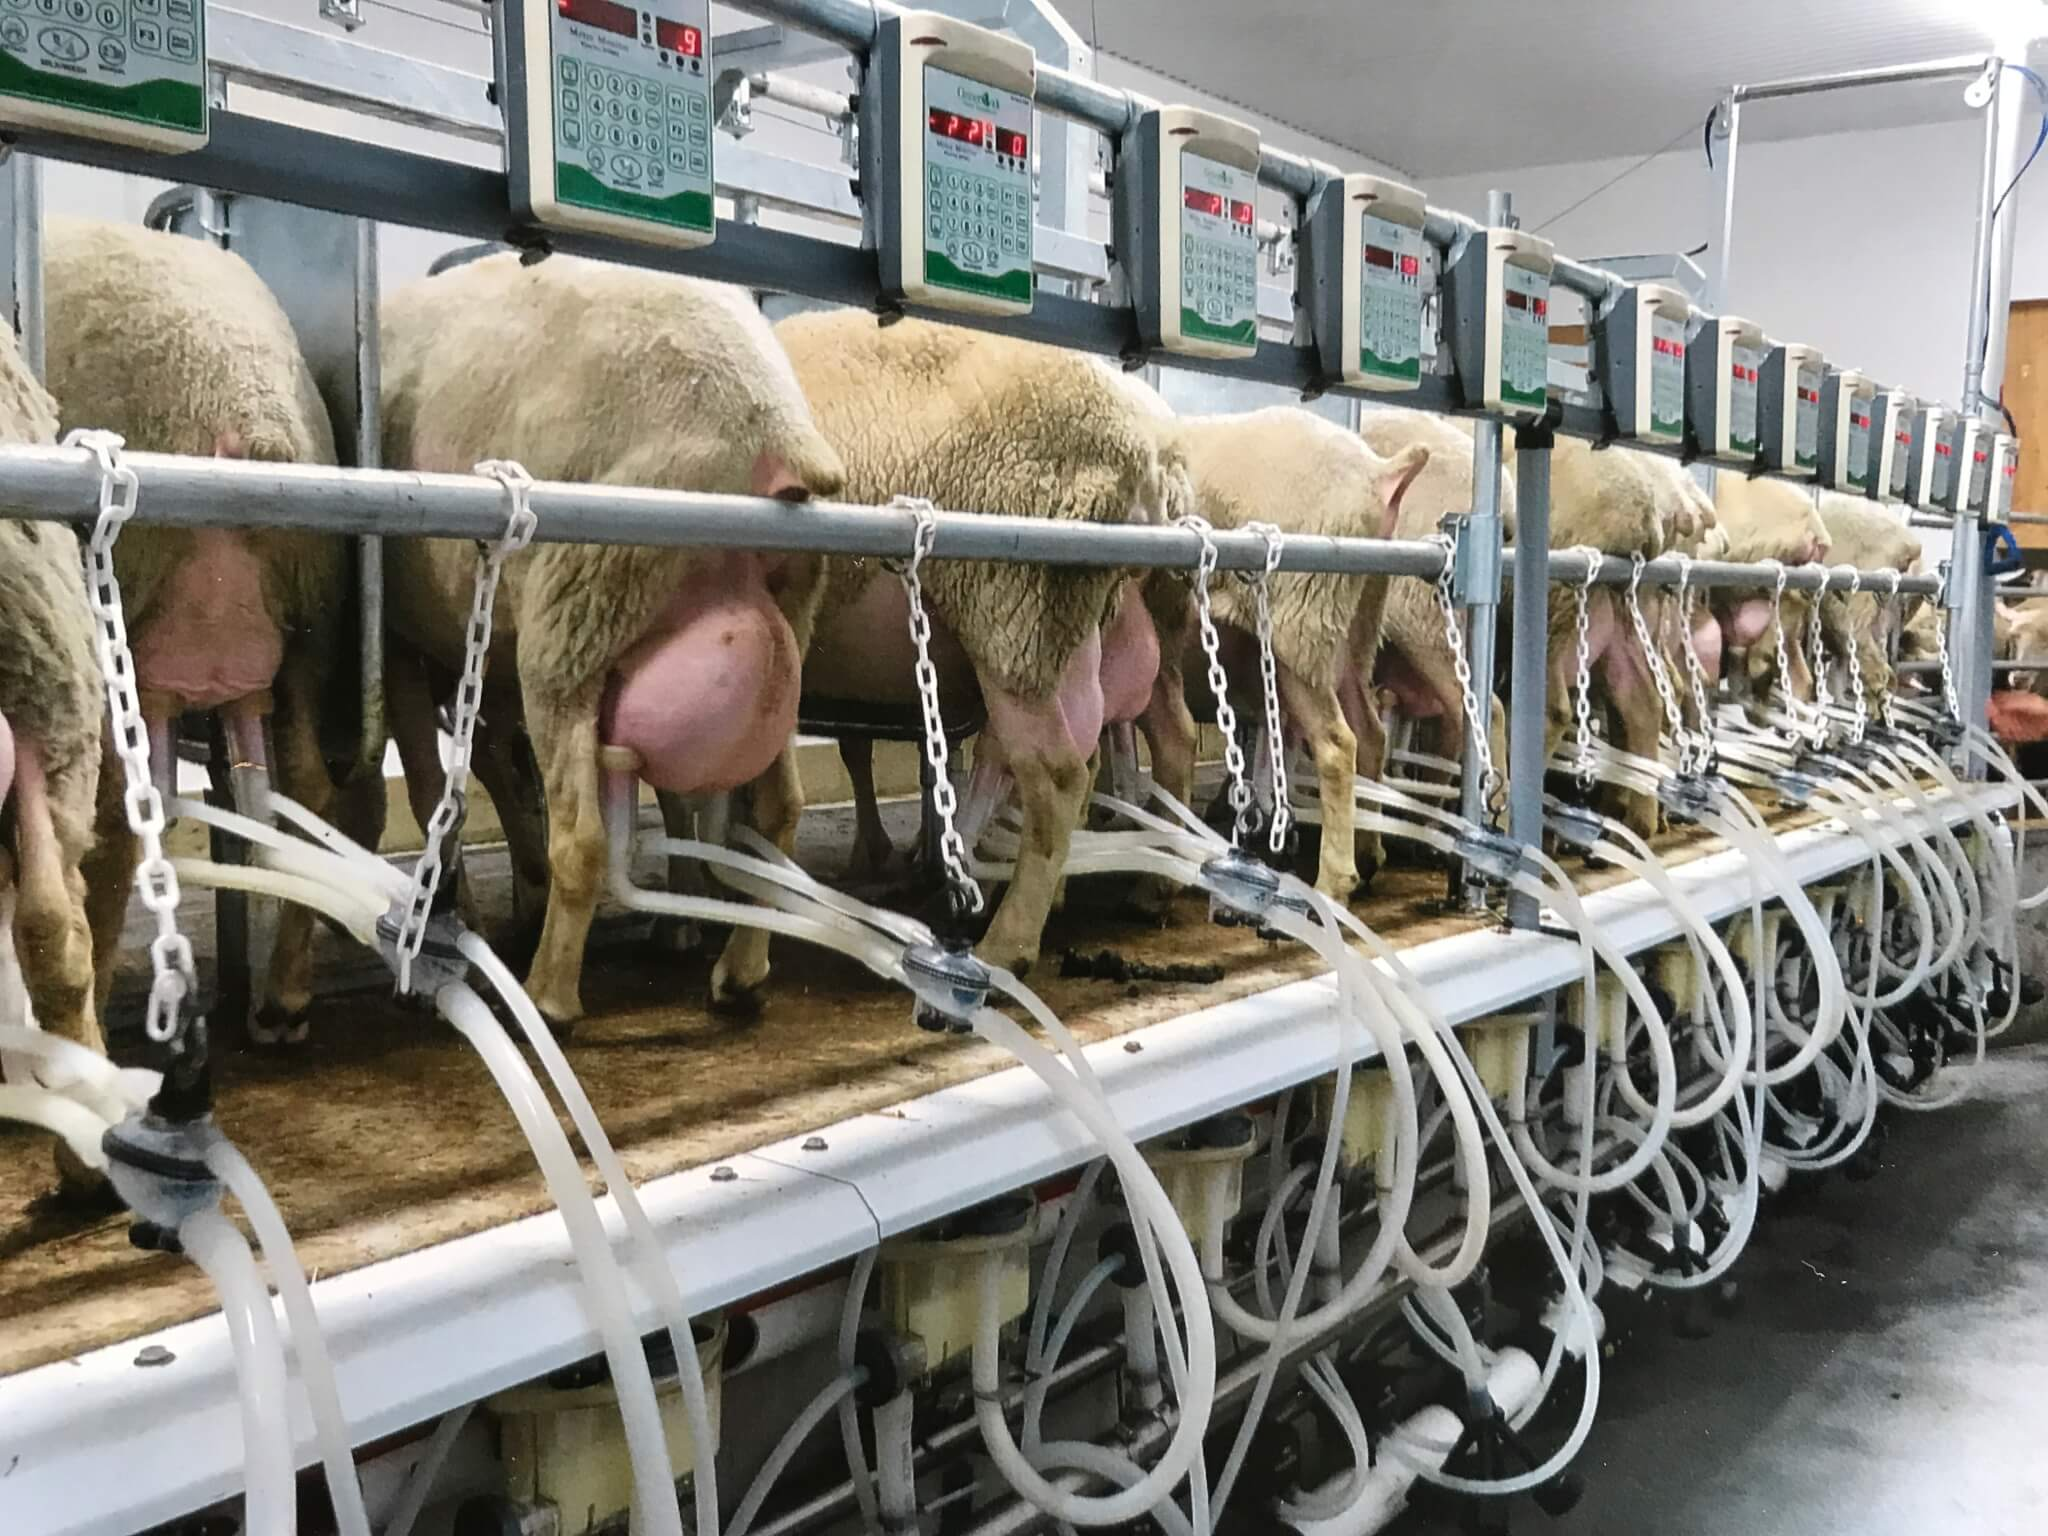 Milking sheep in parlor